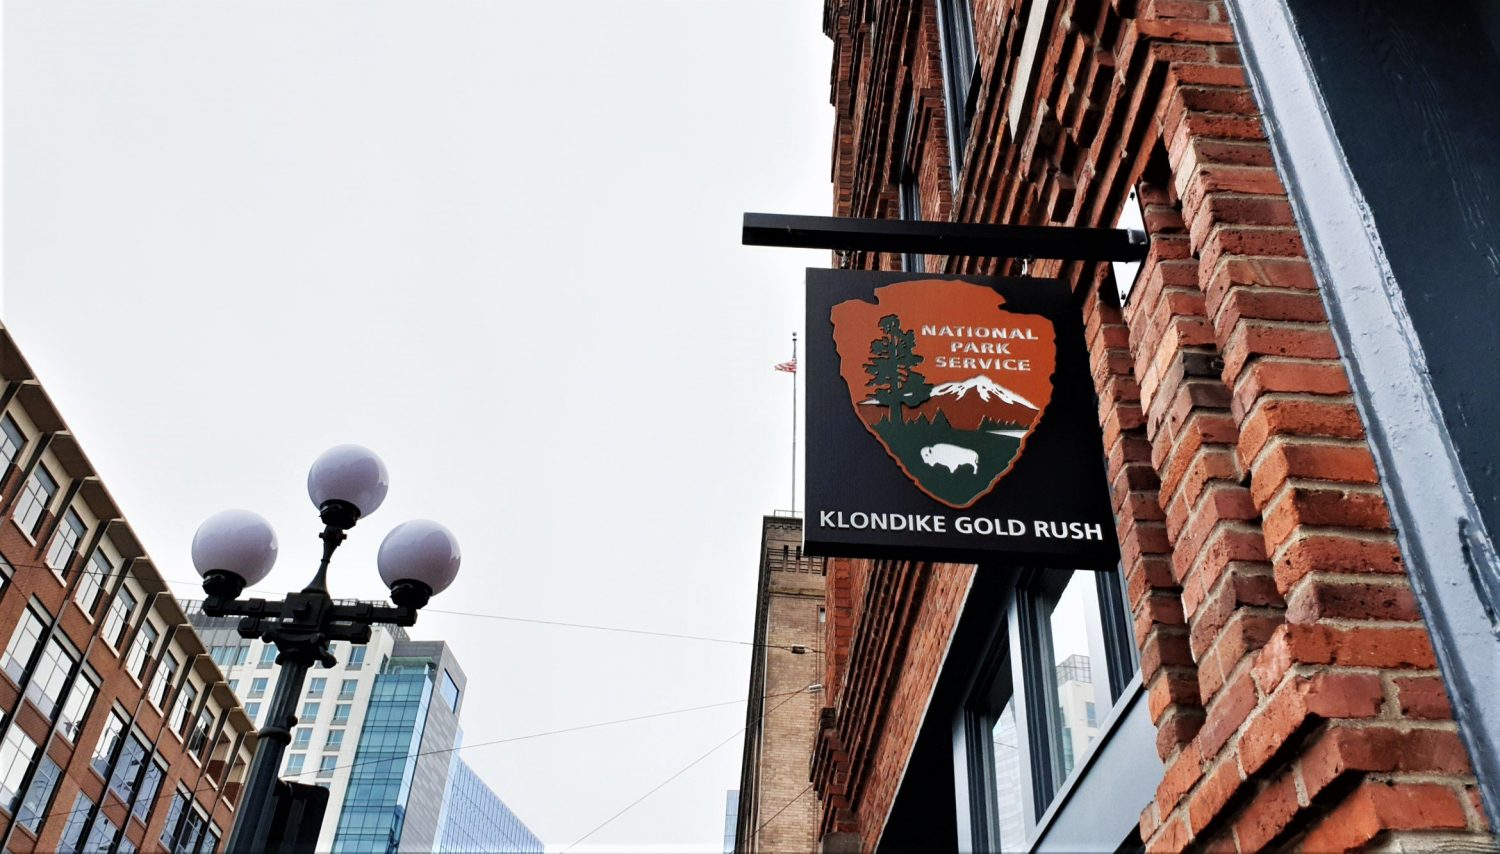 Klondike National Historical Park